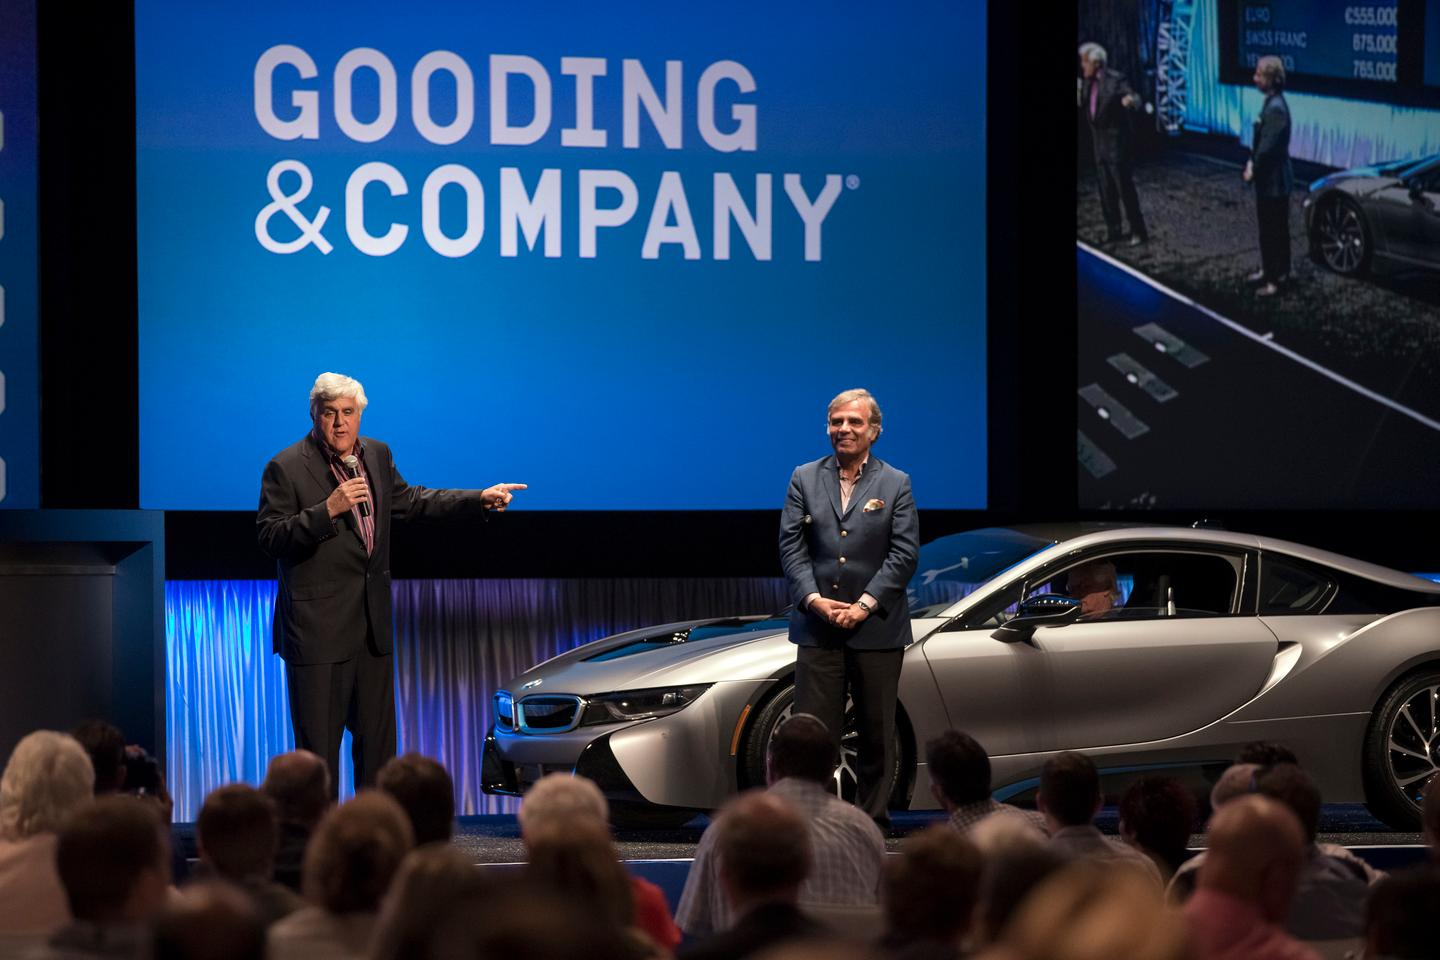 Jay Leno was on hand to introduce the auctioned i8 one-off